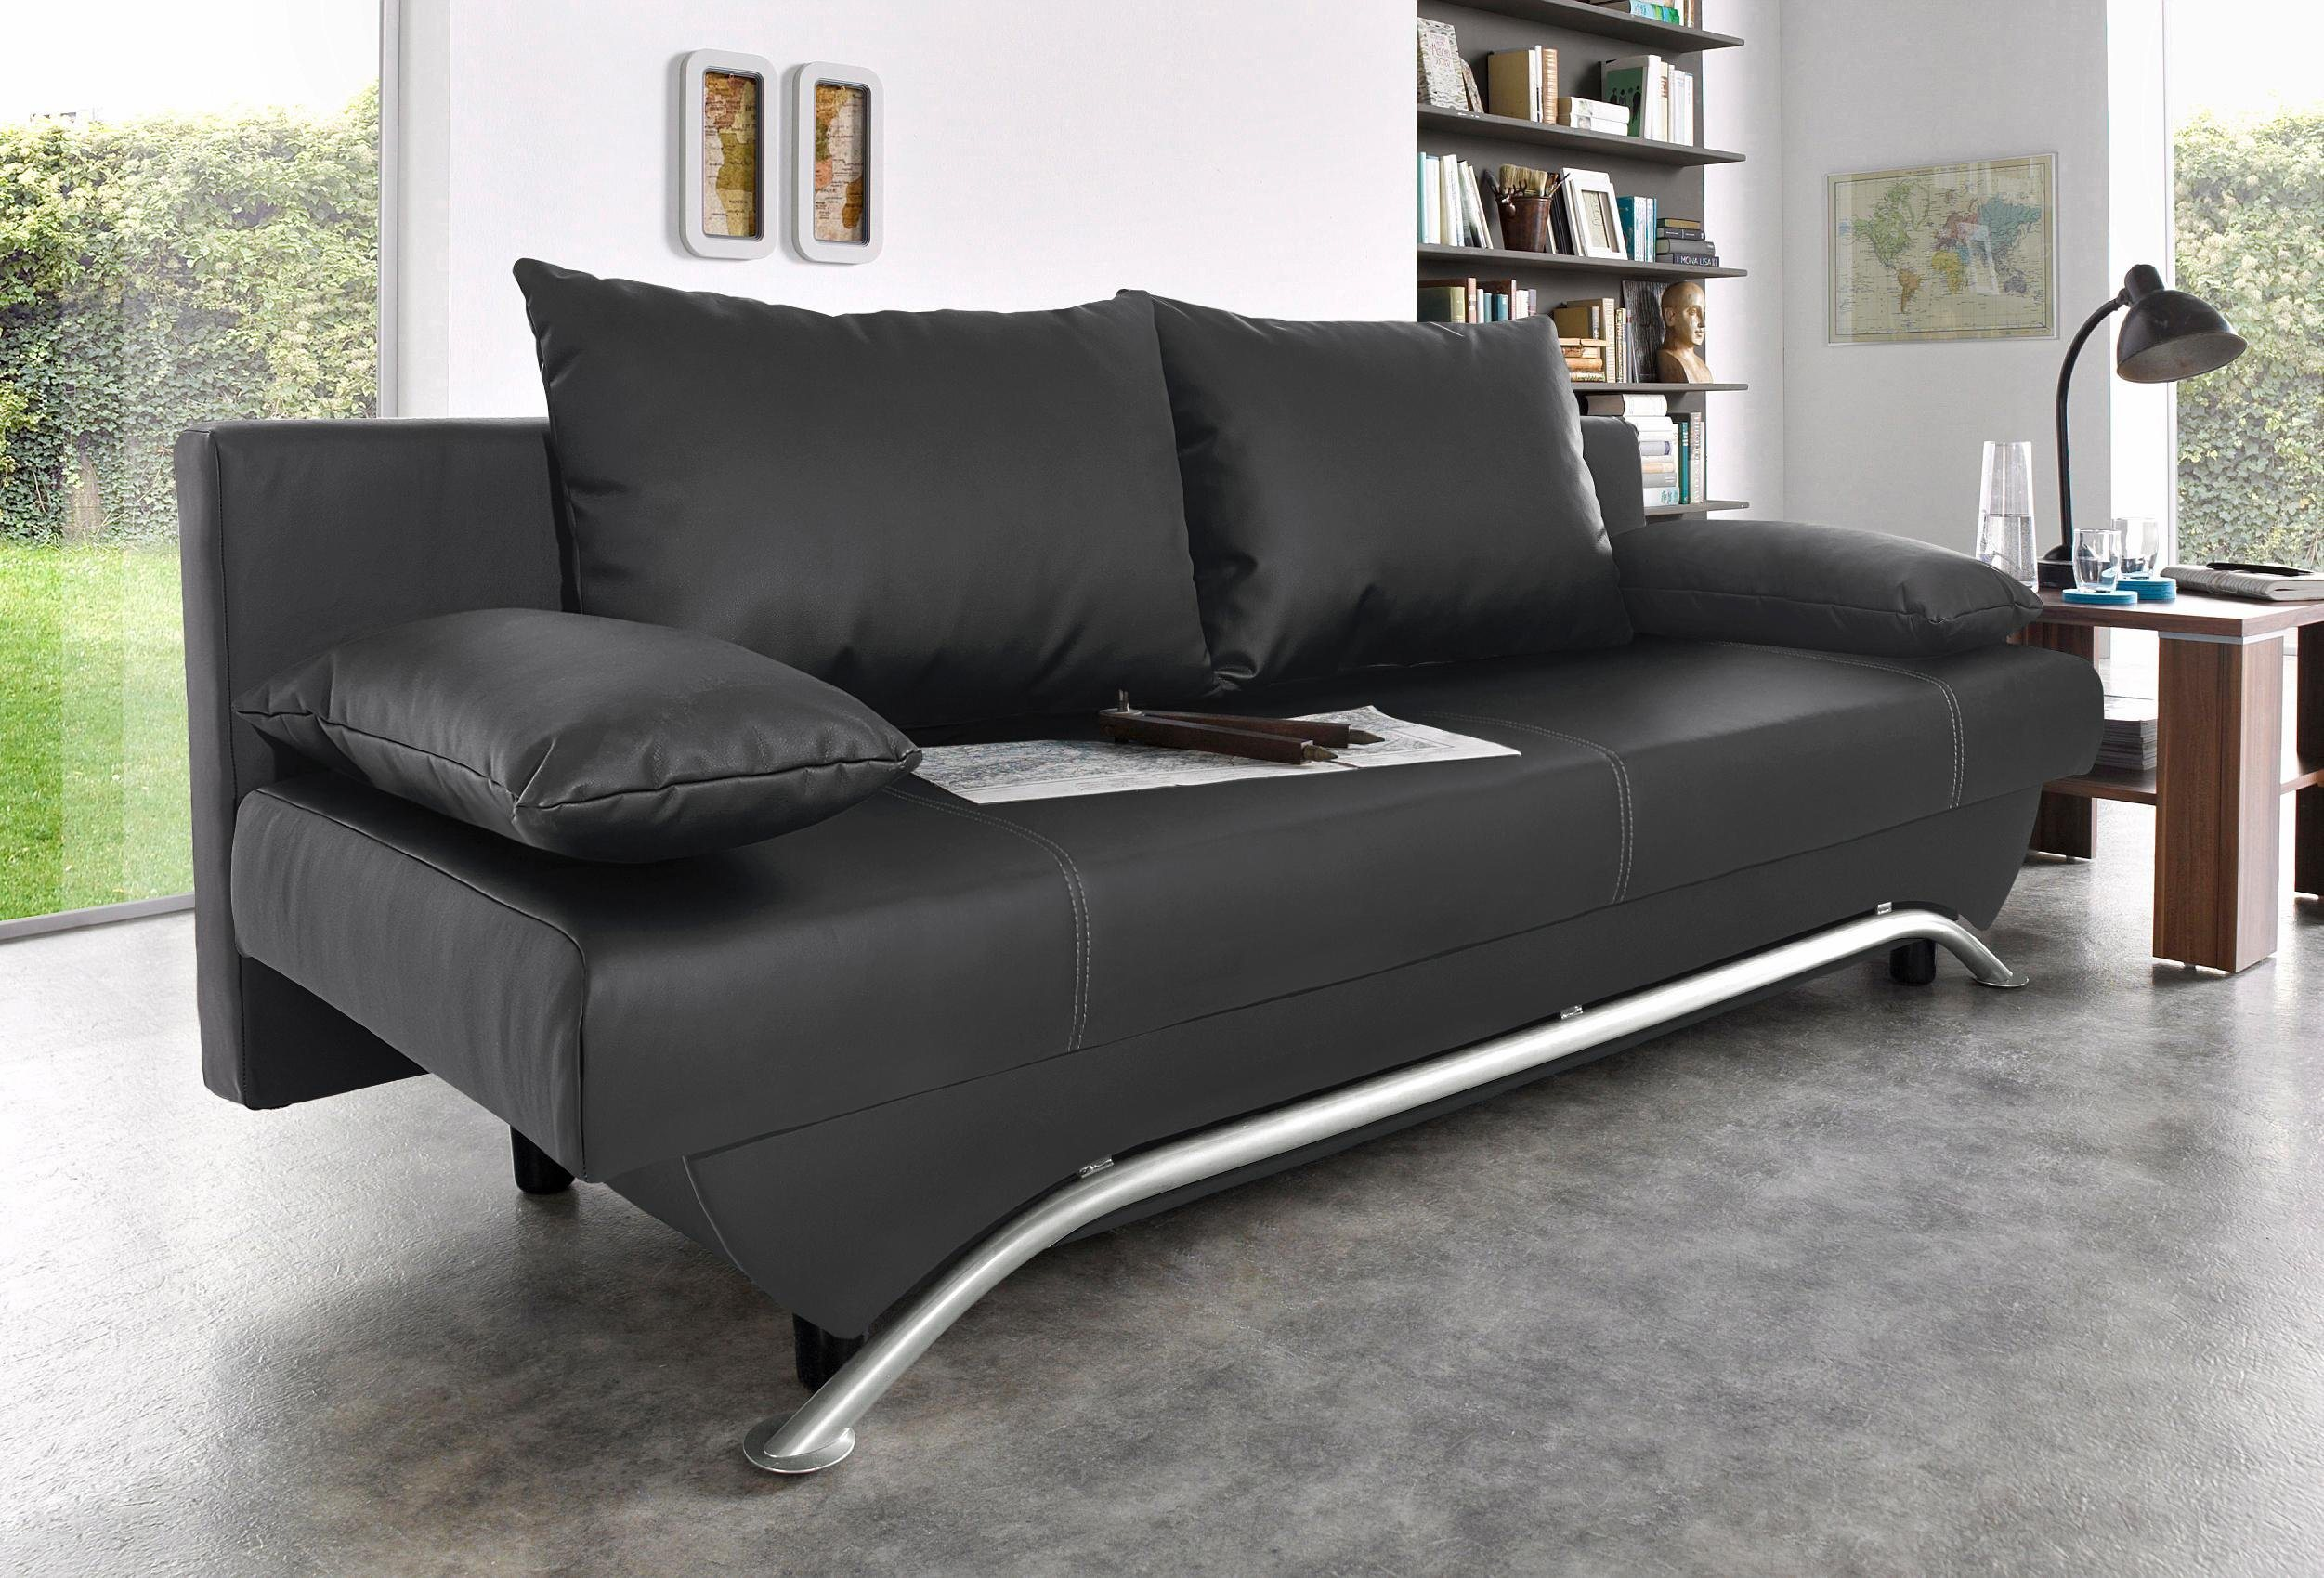 Places of Style Schlafsofa | Wohnzimmer > Sofas & Couches > Schlafsofas | Microfaser - Kunstleder | Places of Style